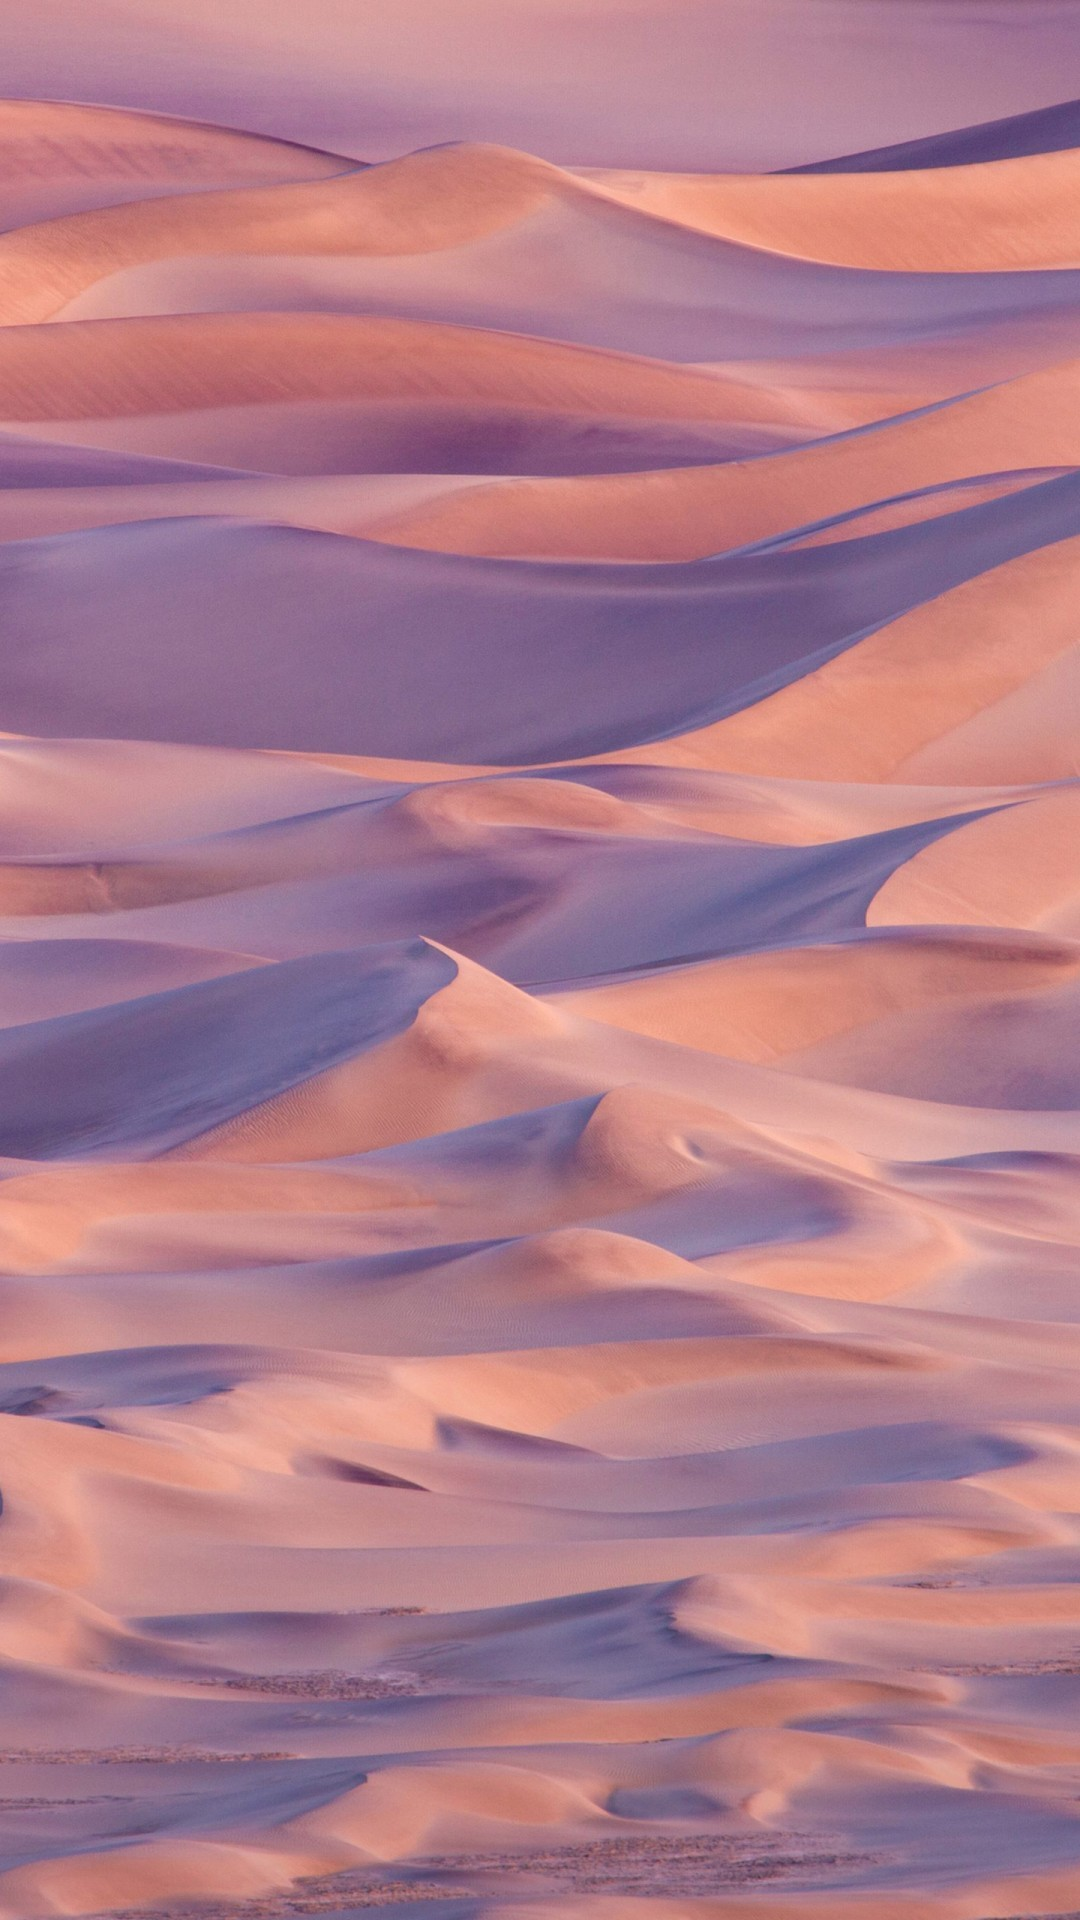 Free Death Valley Desert Dunes phone wallpaper by weezy